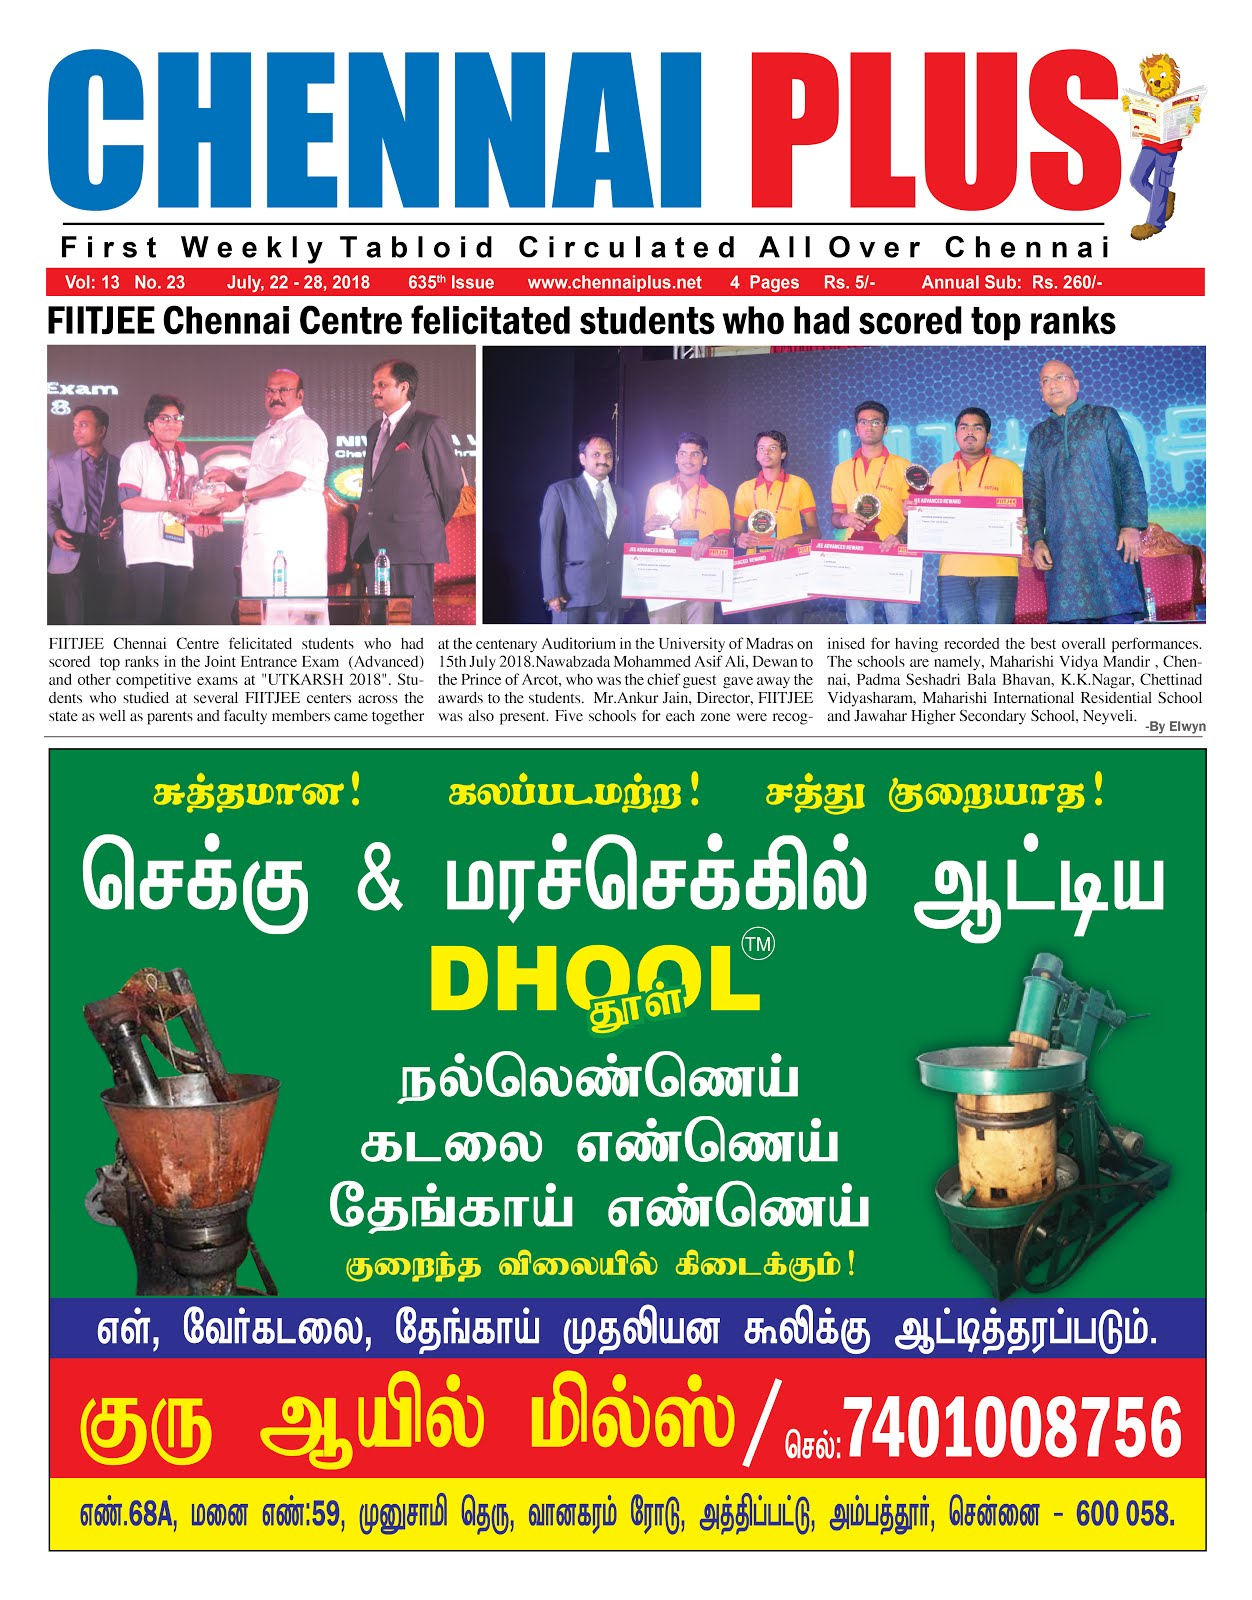 Chennai Plus_22.07.2018_Issue